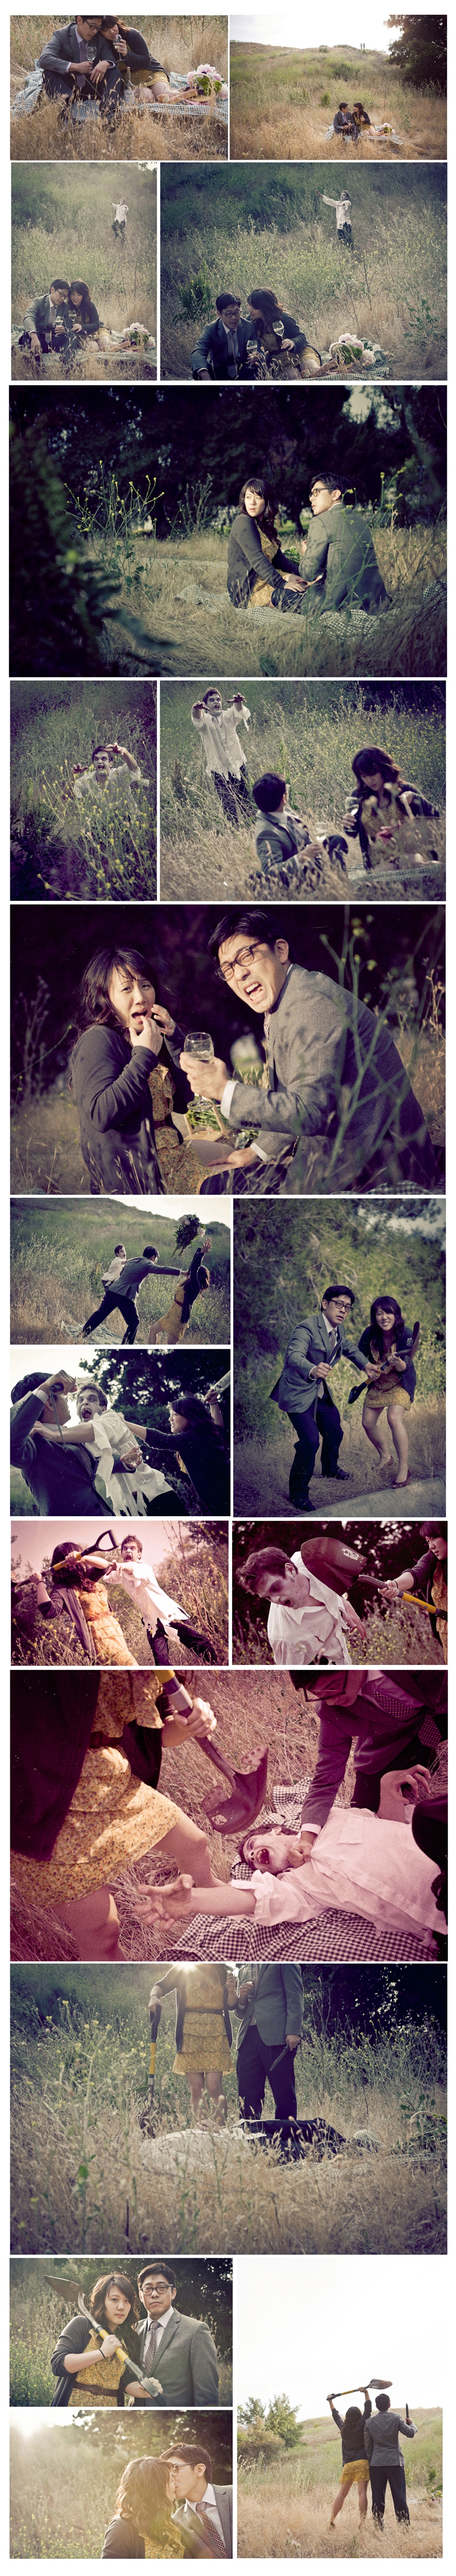 Creative Zombie Engagement photos